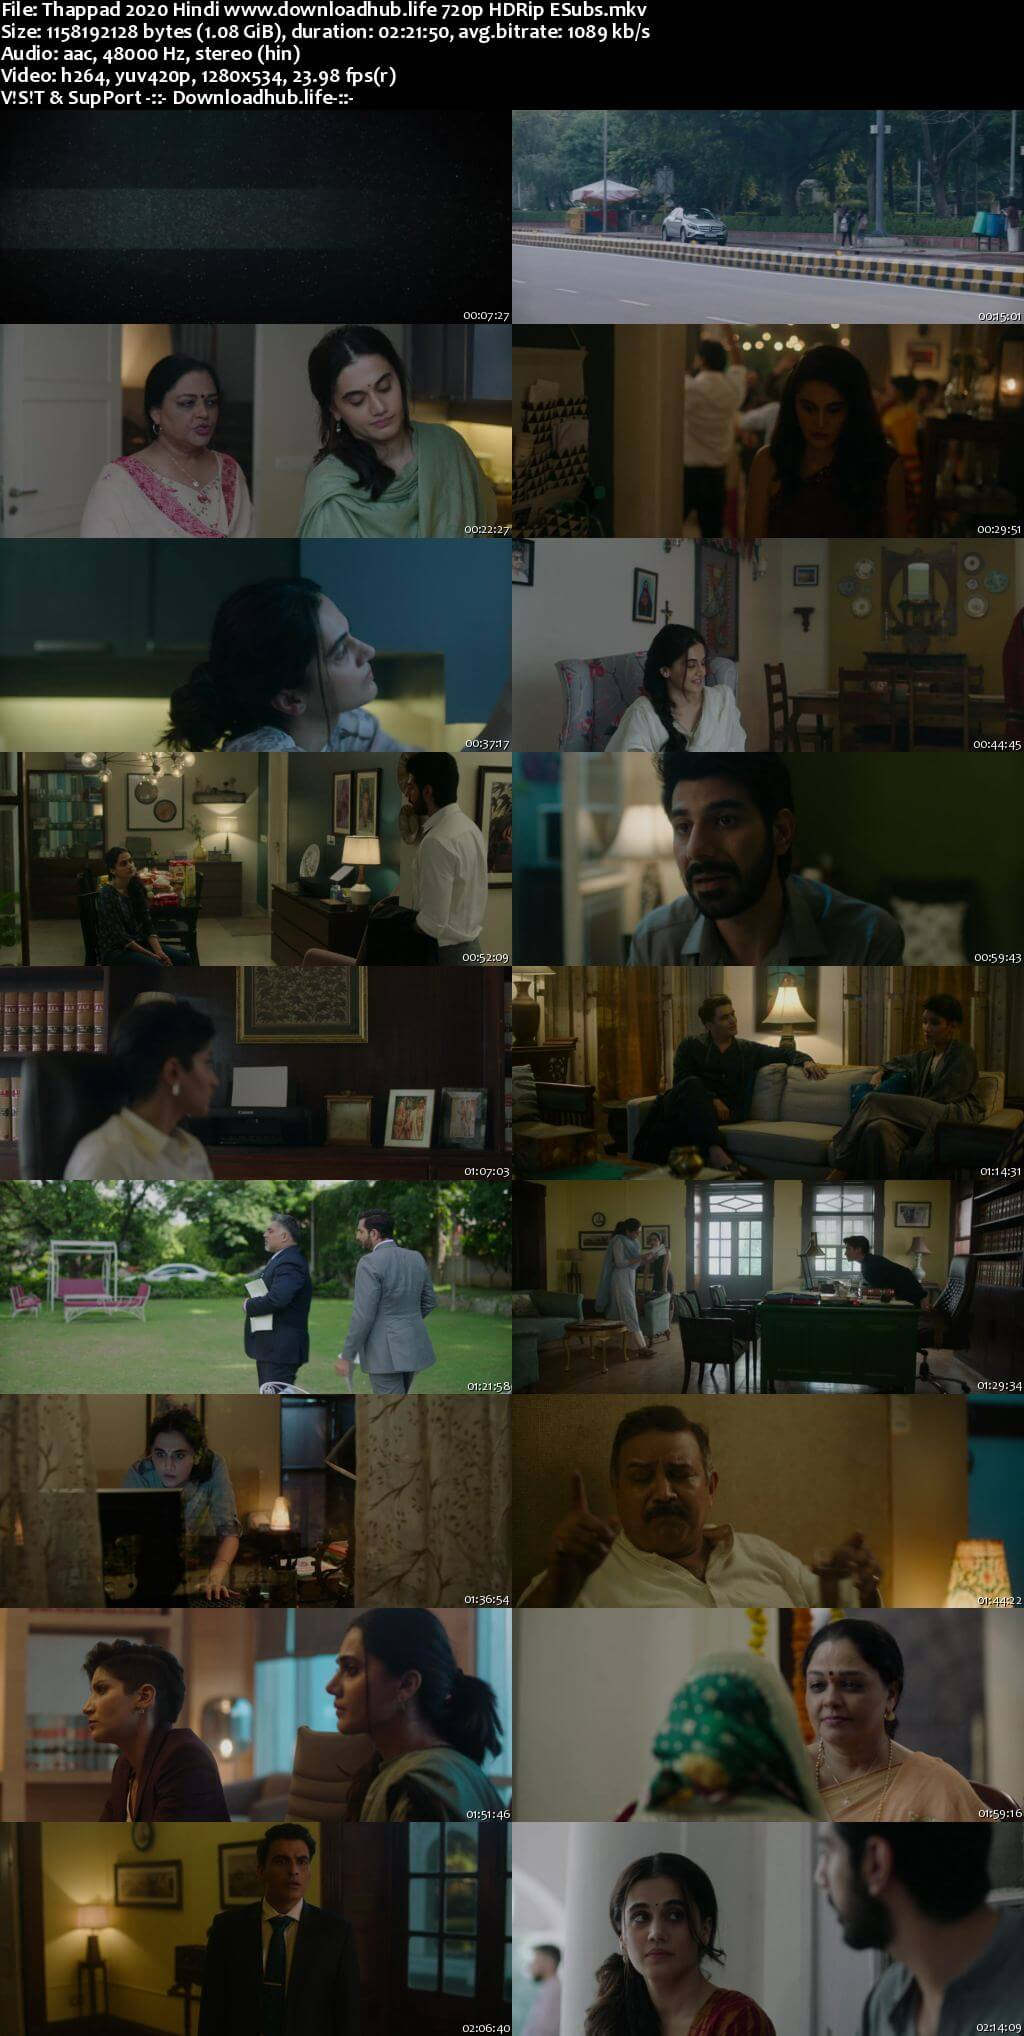 Thappad 2020 Hindi 720p HDRip ESubs